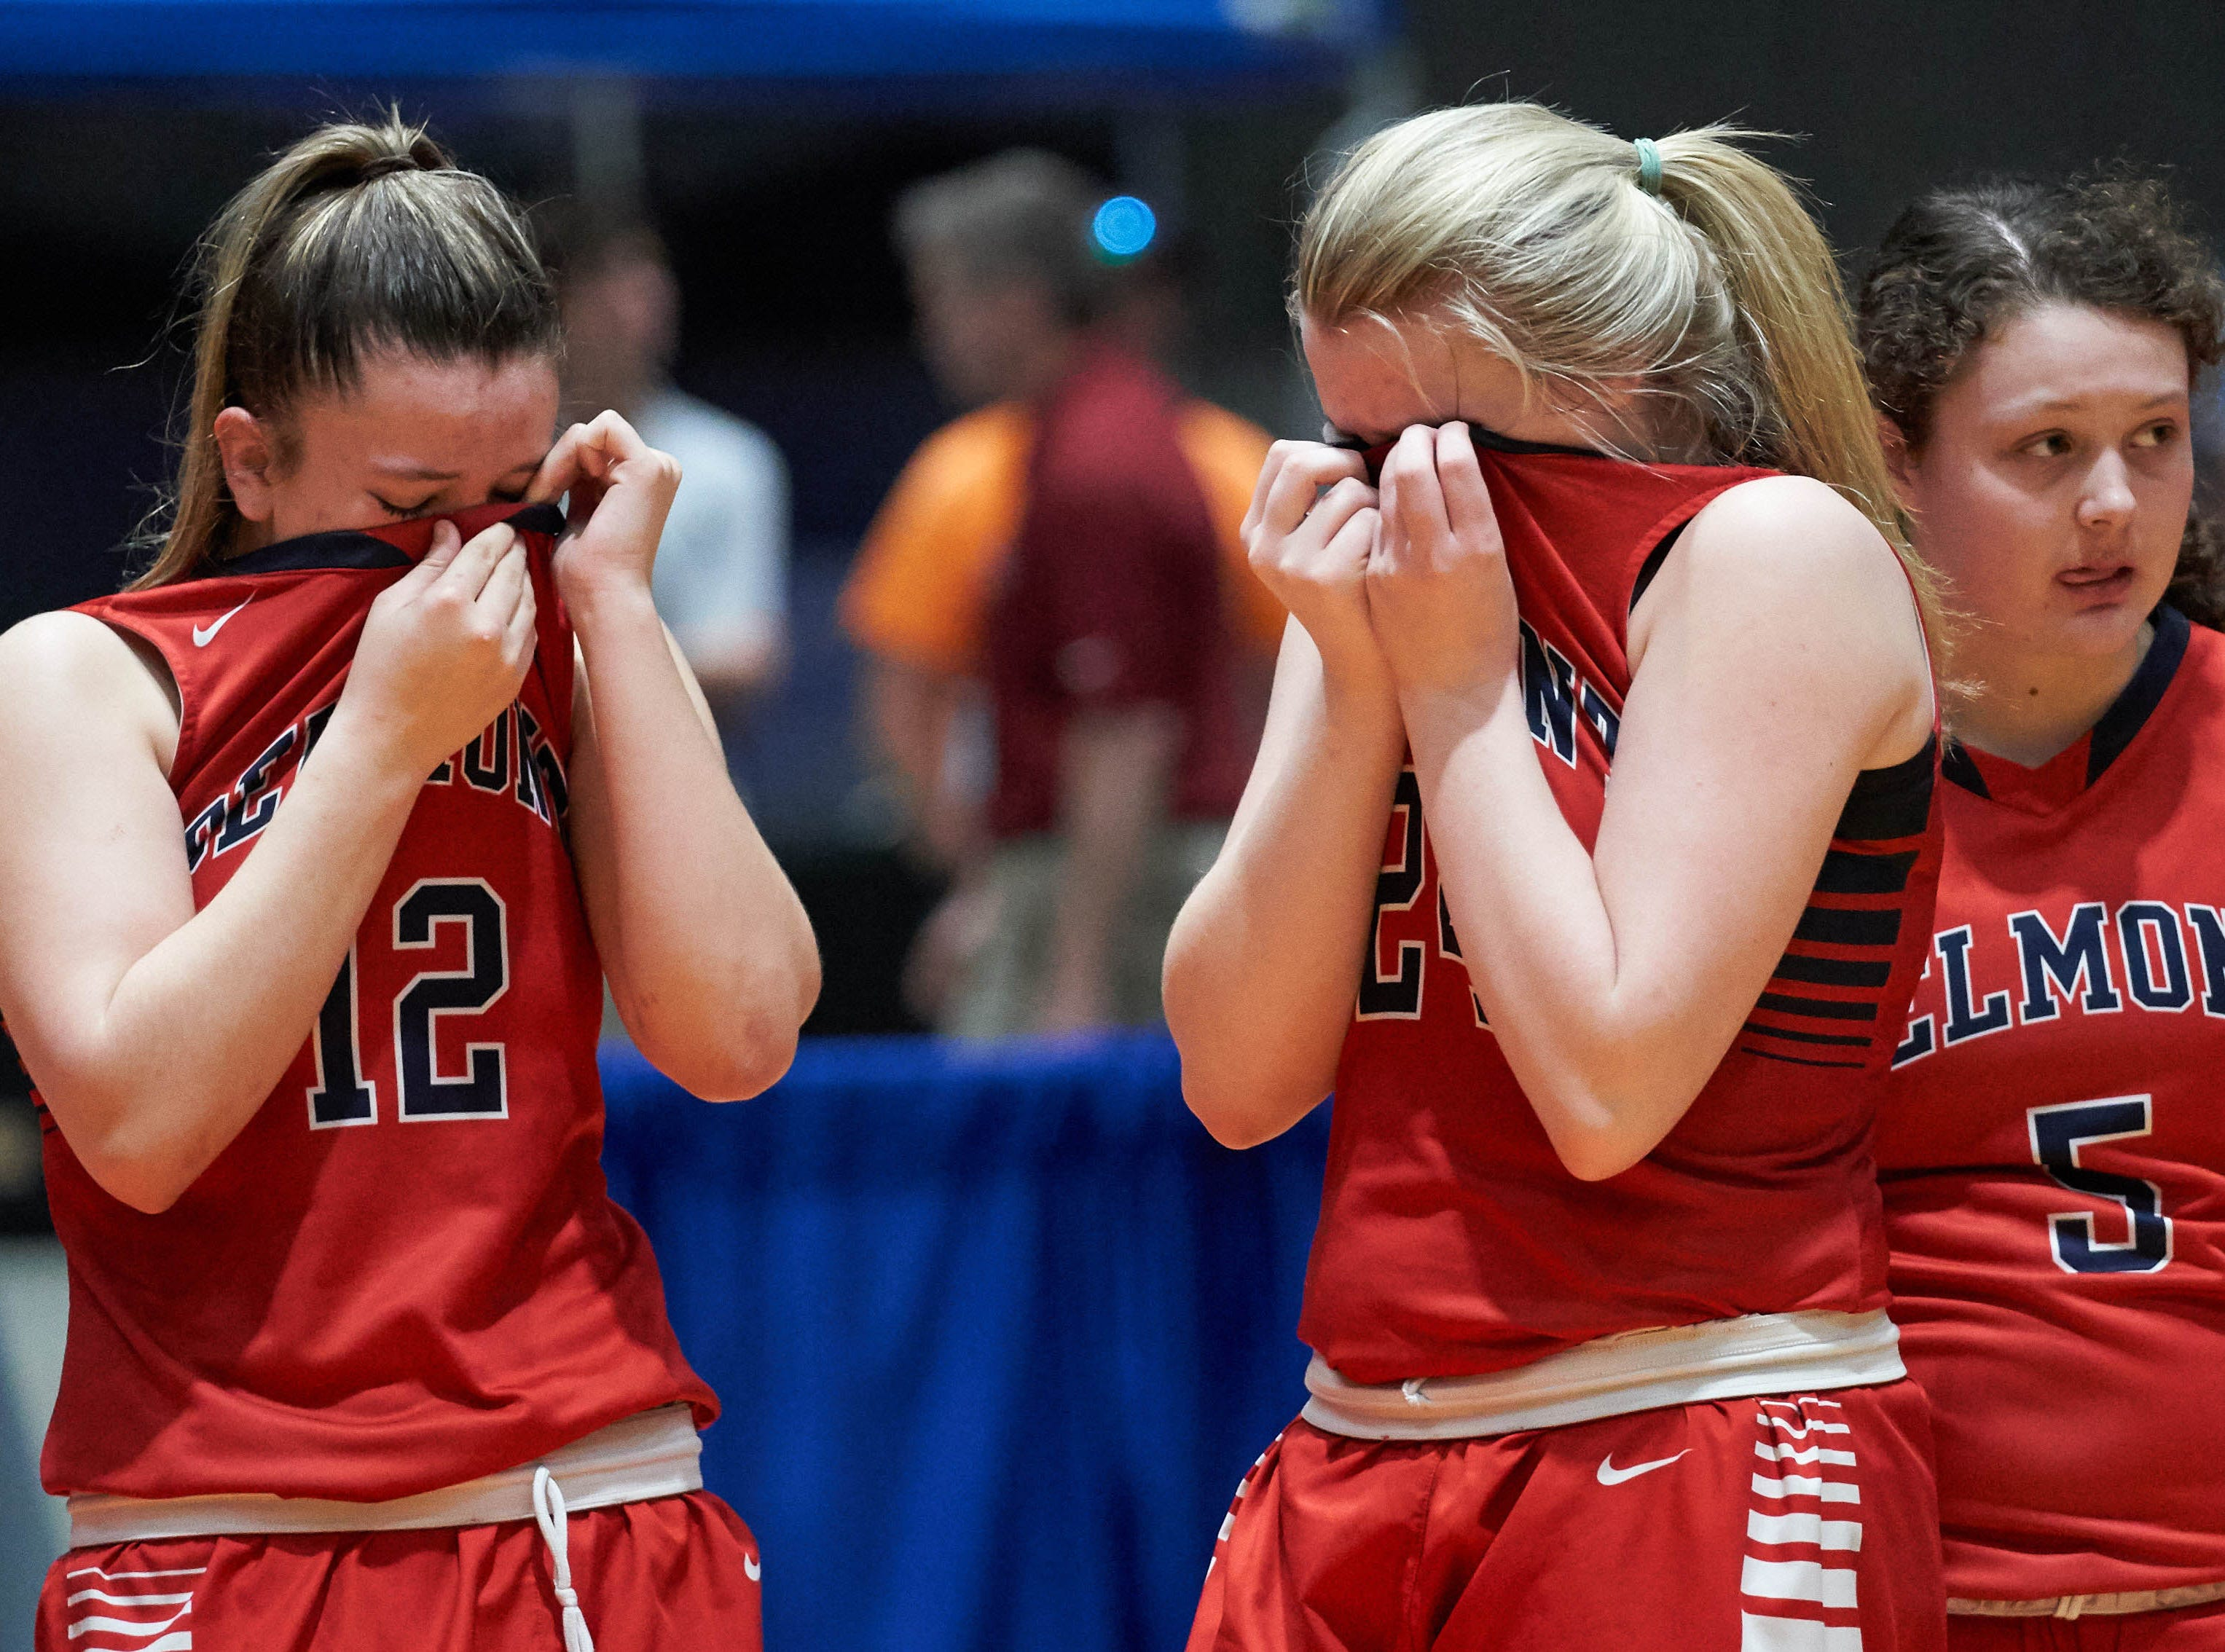 Delected Belmont playeres look on as Kossuth celebrates teh win during the MHSAA 3A Girls Basketball Championship Finals held at the Mississippi Coliseum in Jackson, MS, Saturday March 9th, 2019.(Bob Smith)